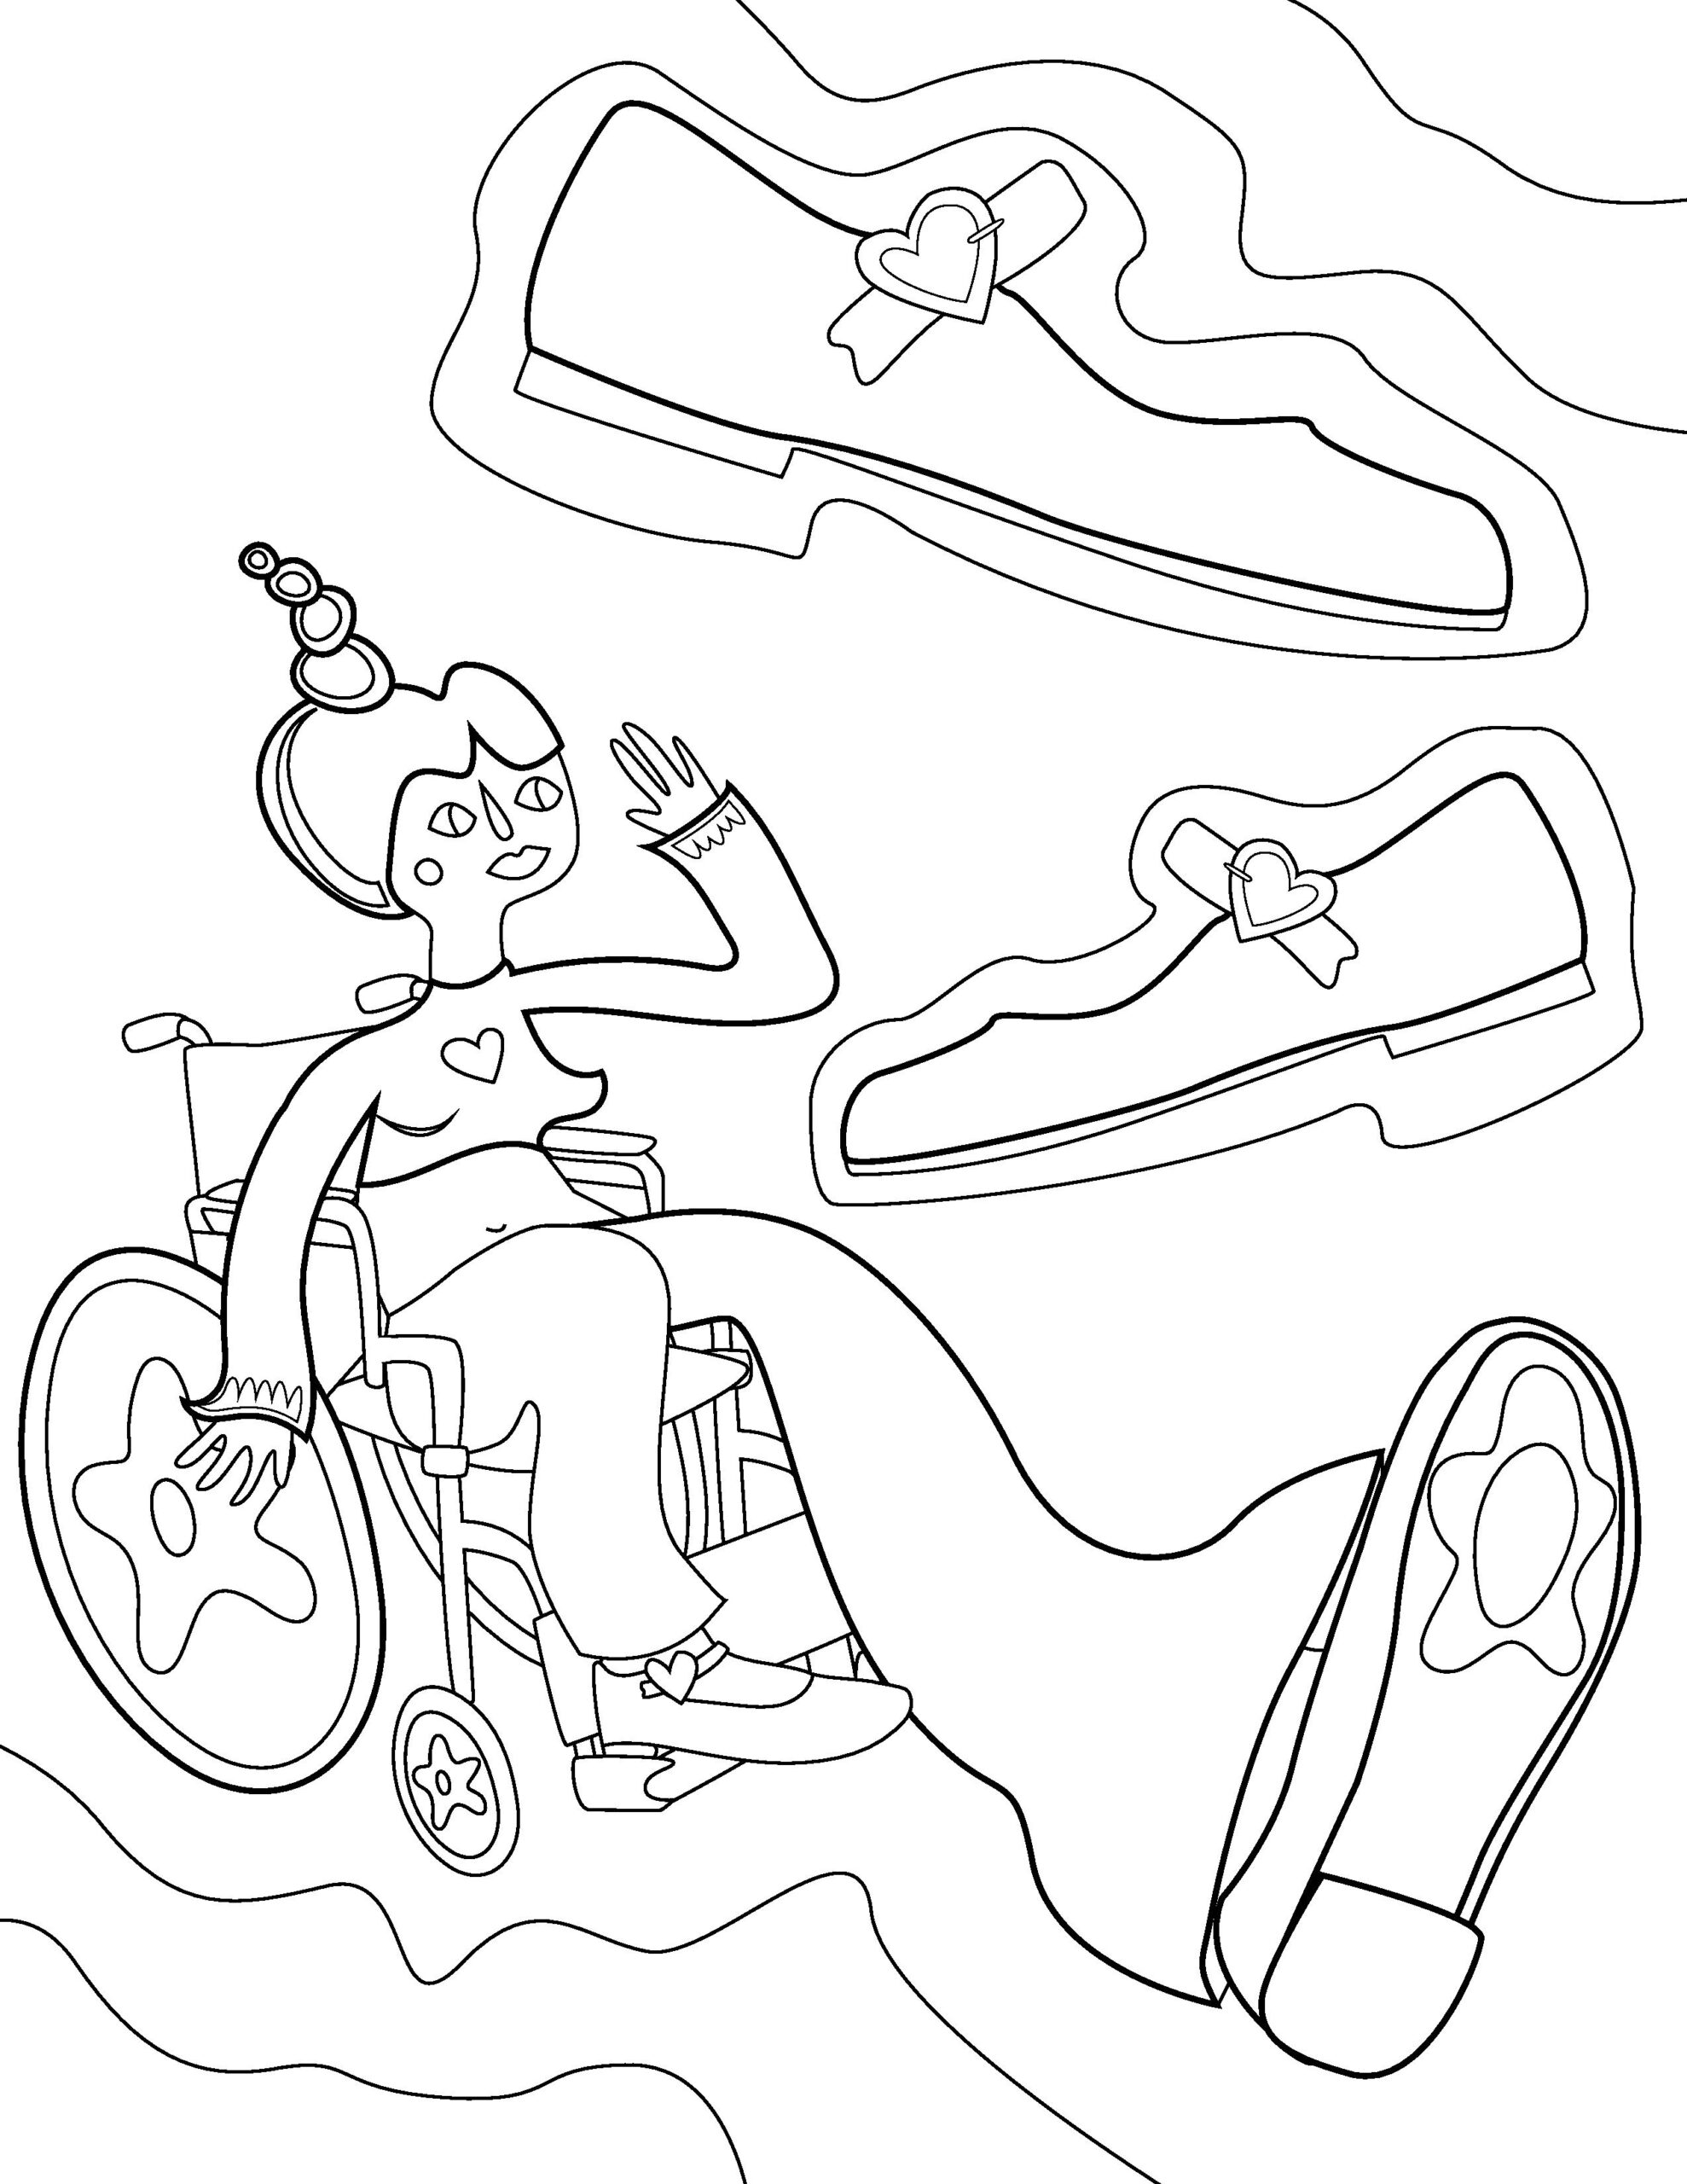 Colouring page illustration of a figure in a wheelchair with leg extended, accompanied by illustrations of shoes.